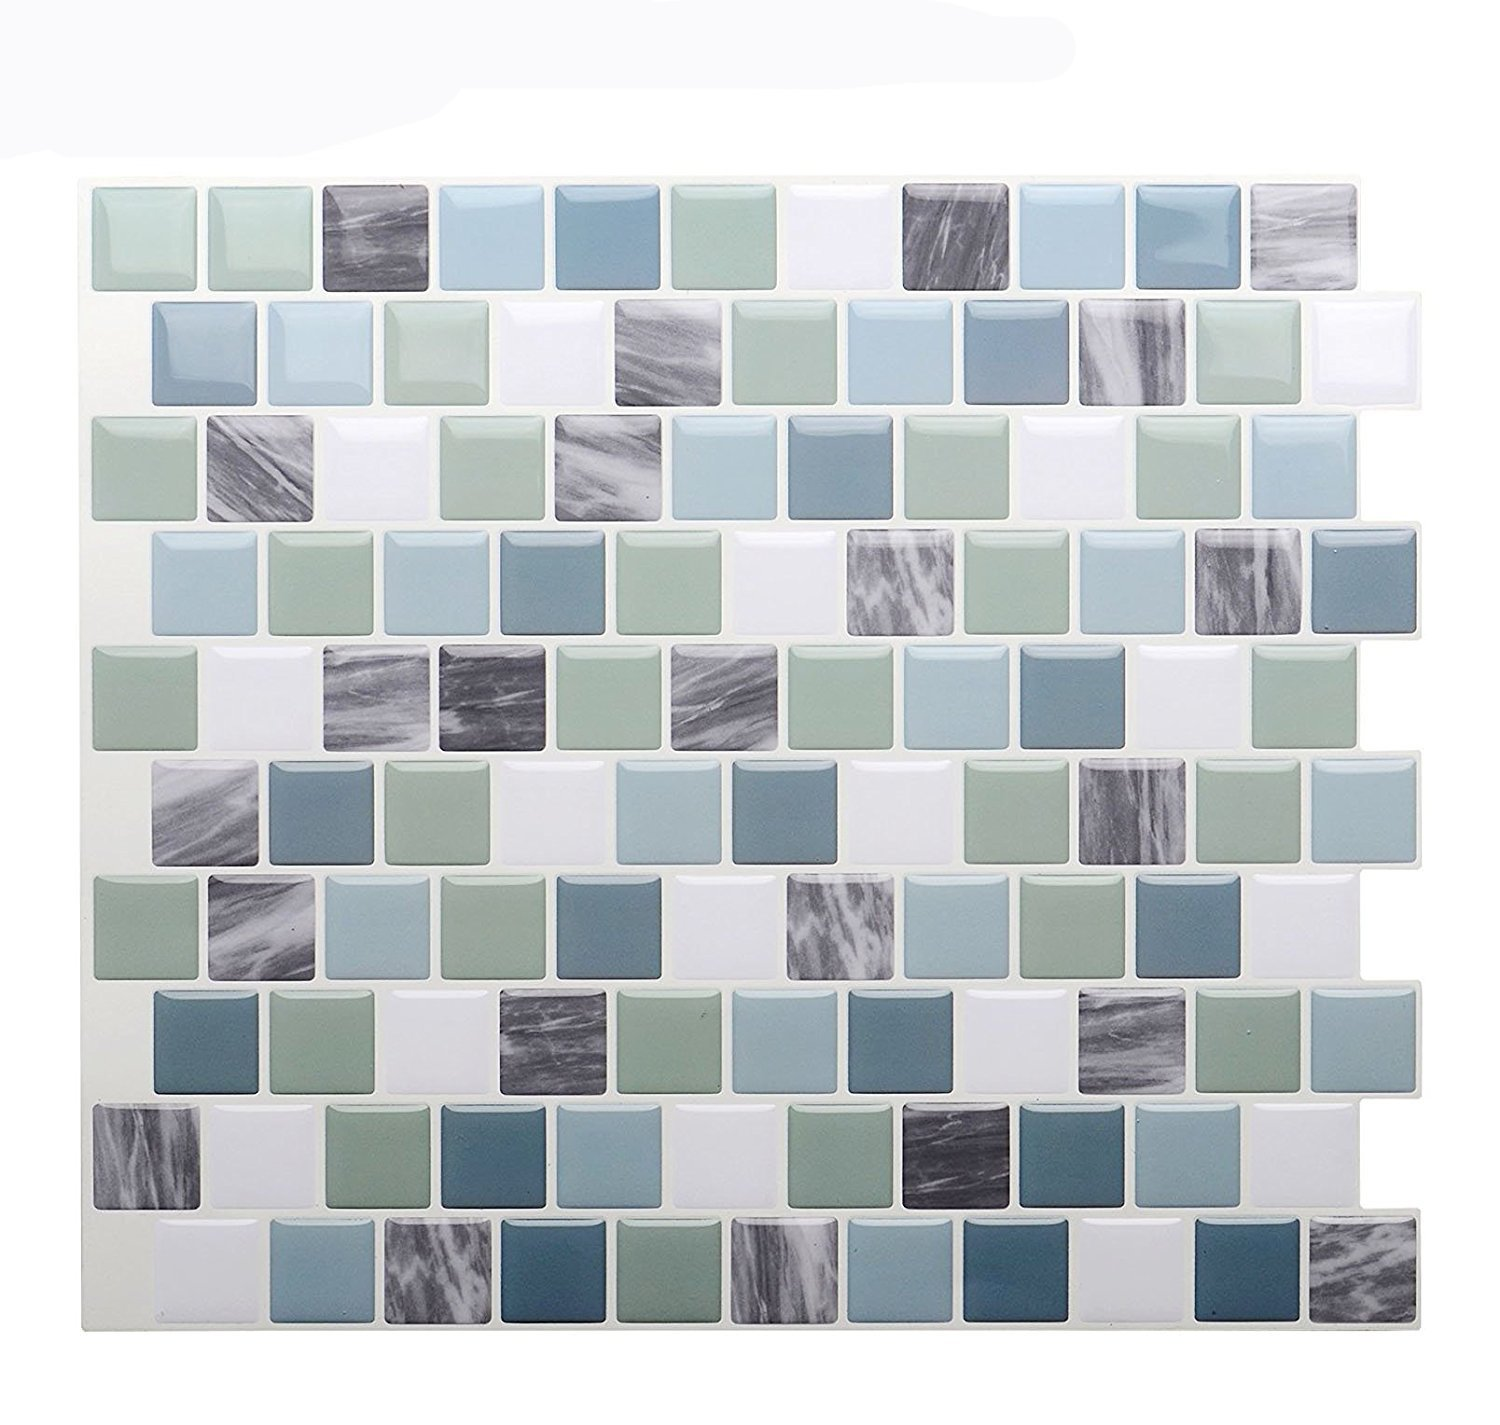 Vamos Tile Premium Anti Mold Peel and Stick Tile Backsplash,Self Adhesive Wall Tiles for Kitchen & Bathroom-10 x 9'' (6 Sheets)